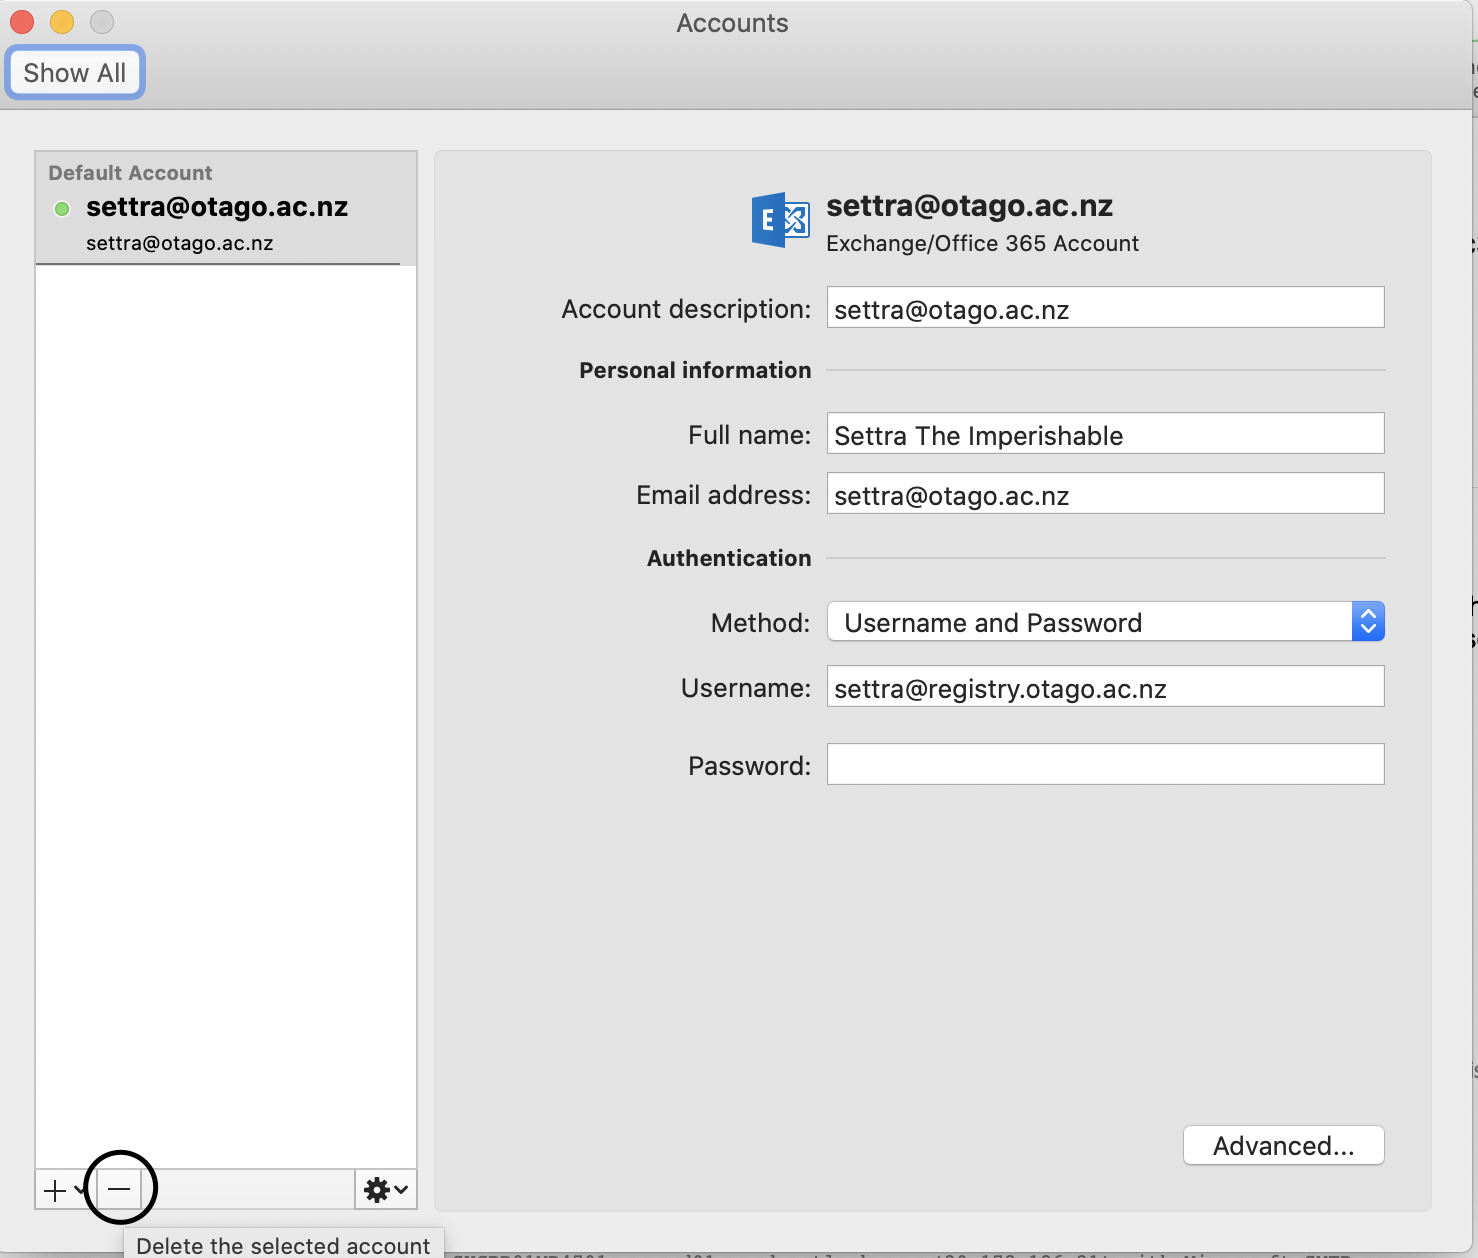 Screenshot showing removing existing account in Accounts in Outlook for macOS